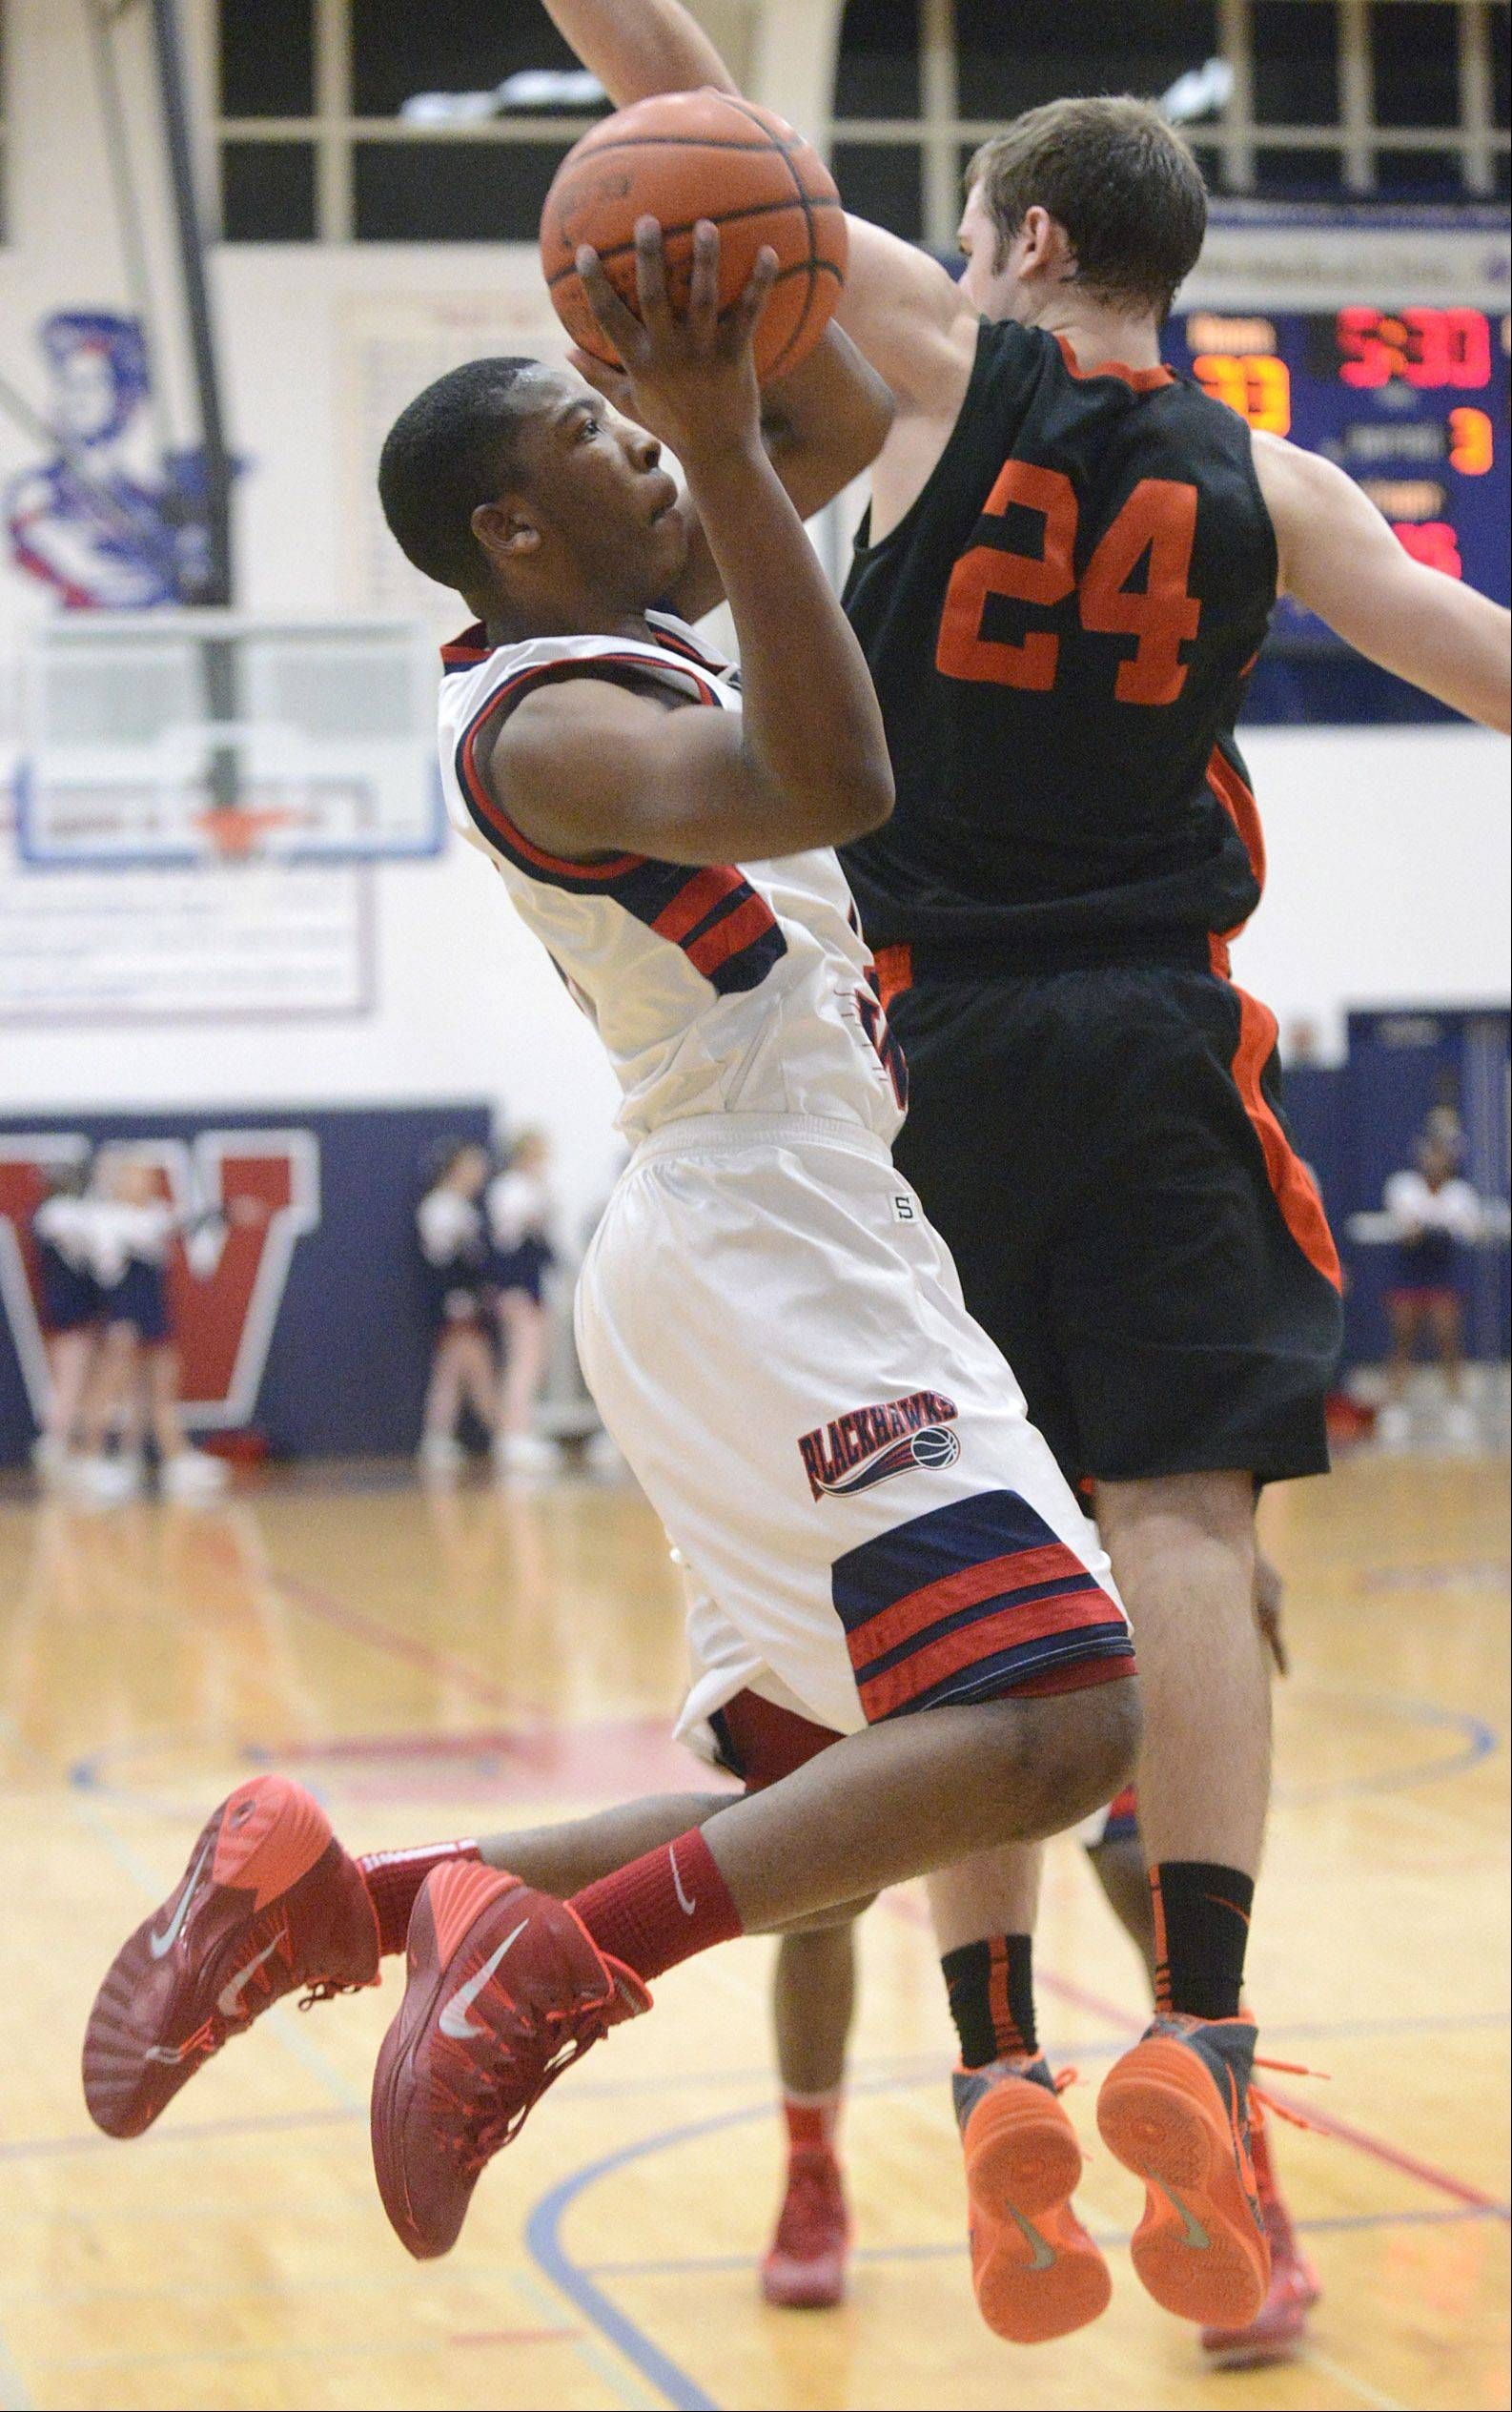 Wheaton Warrenville South's Matt Kienzle can't block a shot by West Aurora's Jontrell Walker in the third quarter on Tuesday, February 4.